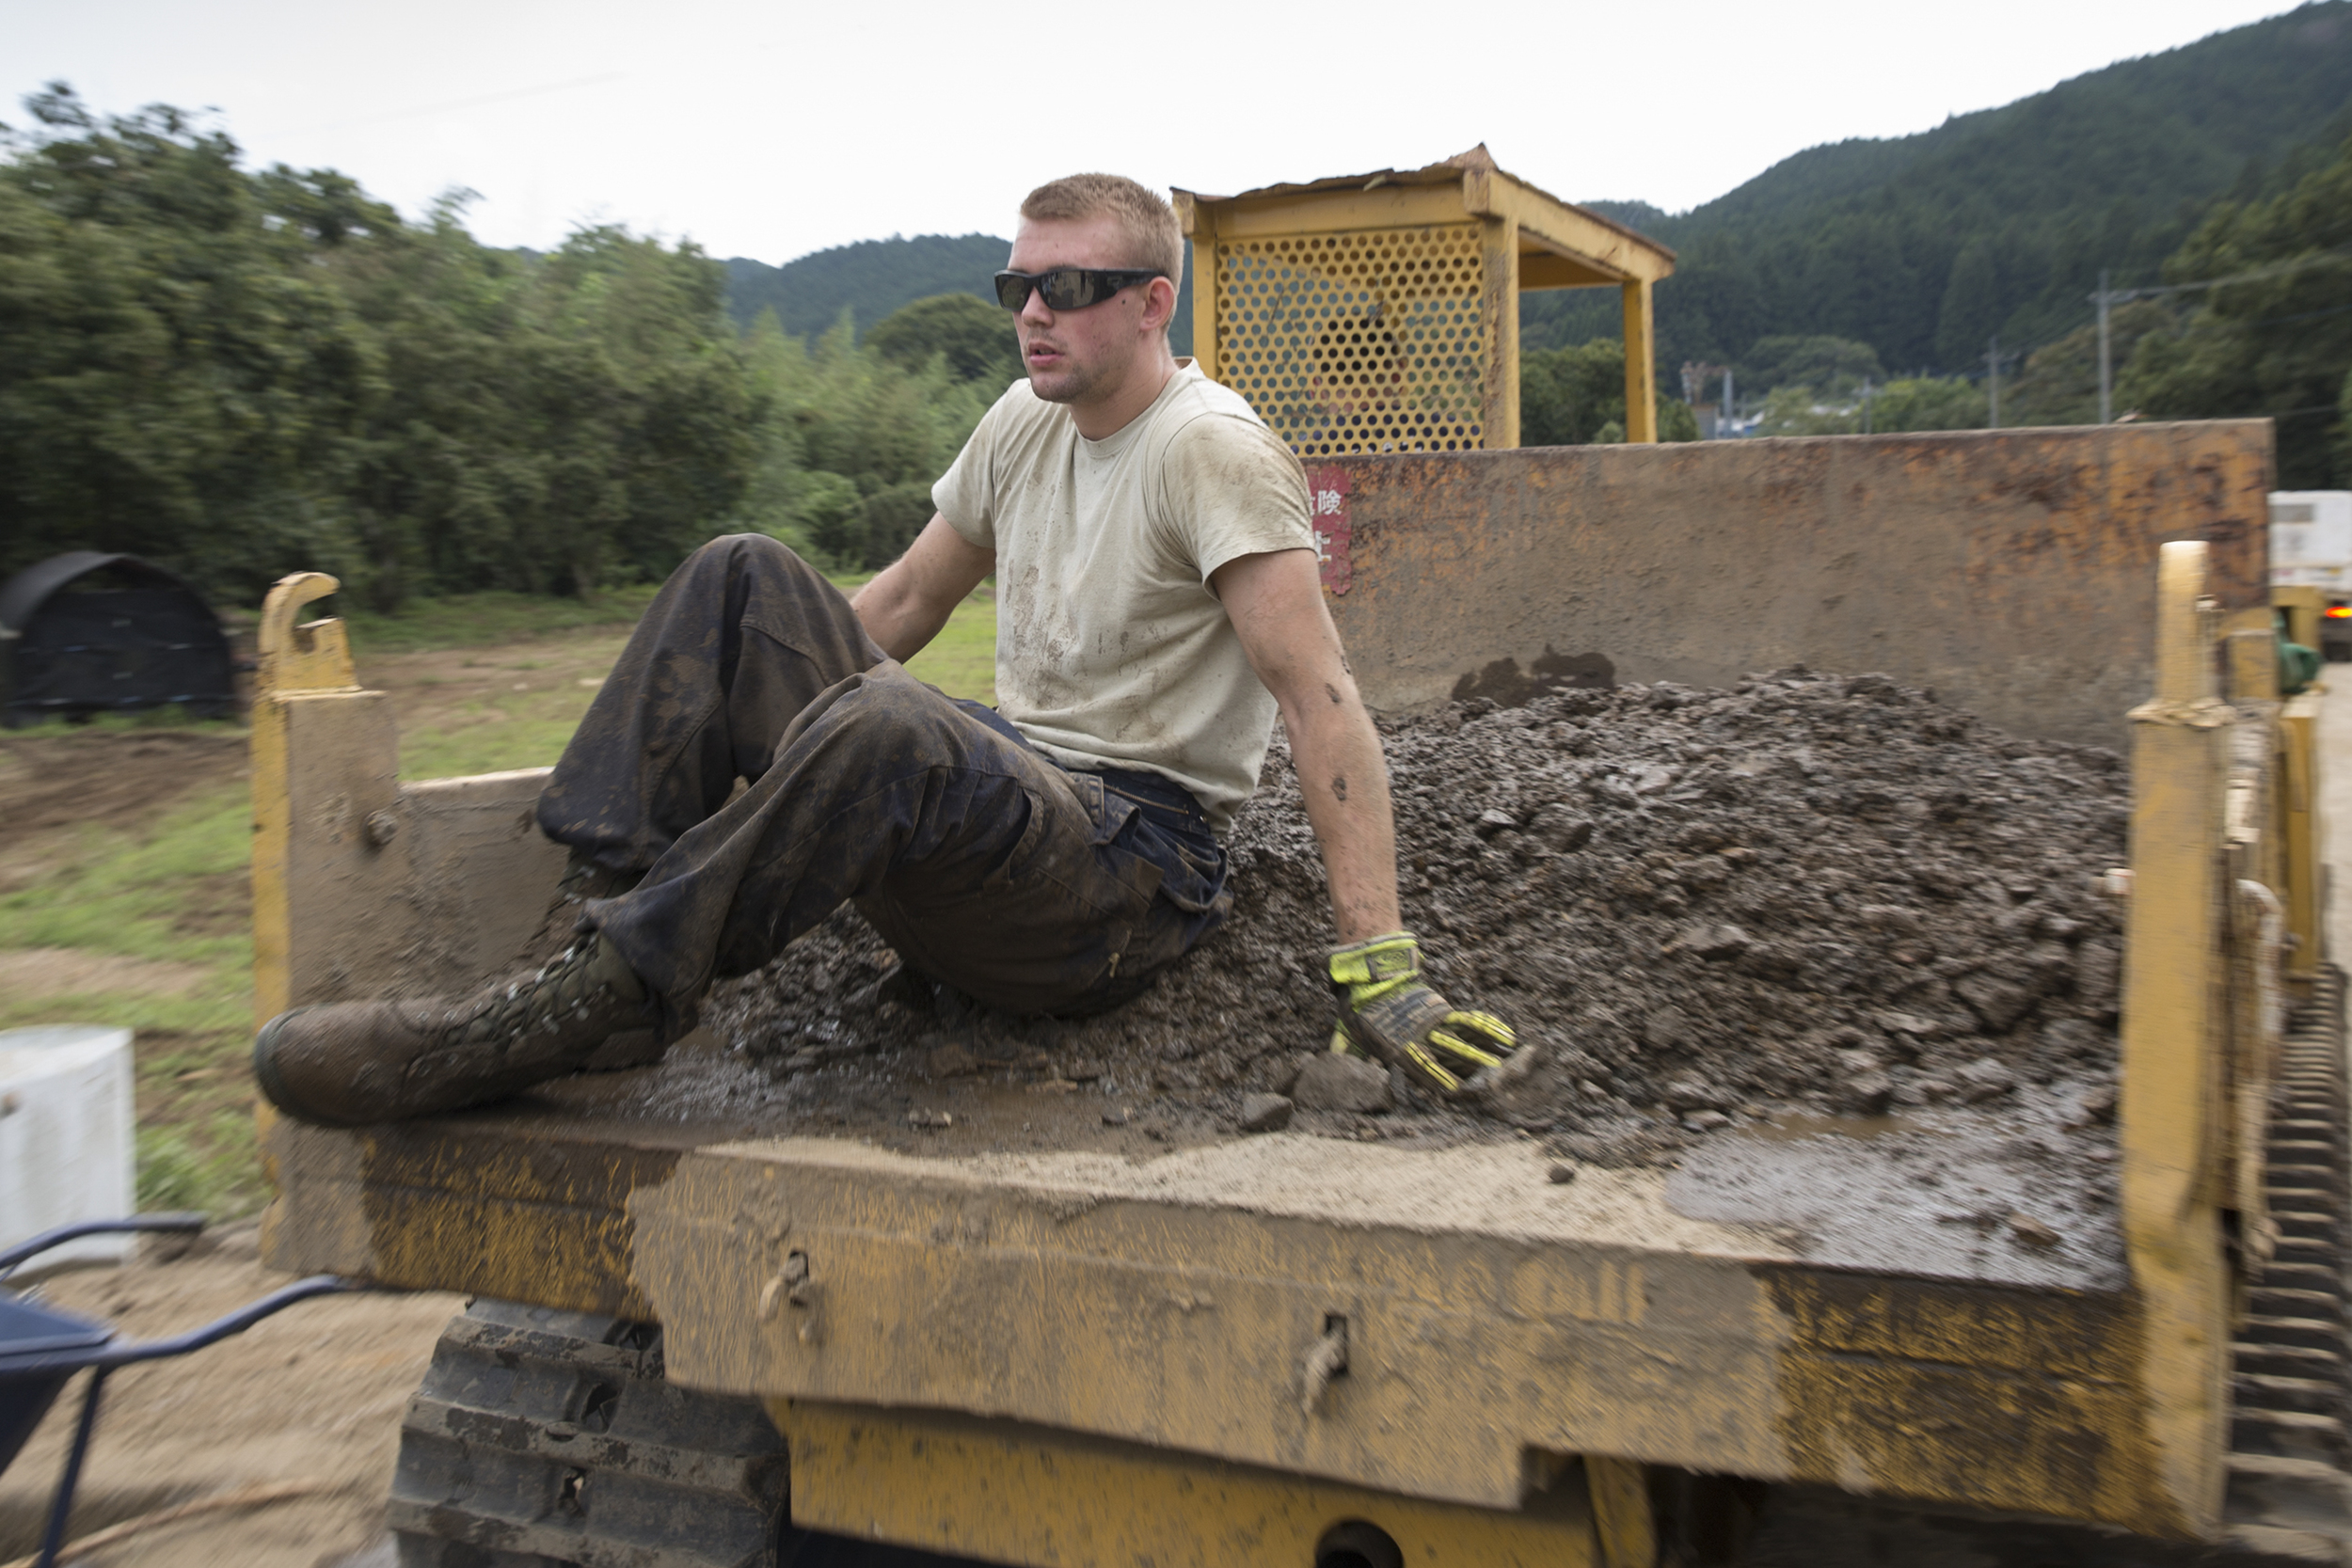 Airman 1st Class Thomas Smith, 374th Civil Engineer Squadron fire protection, rides in the back of a truck moving mudflow at Kanuma City, Tochigi Prefecture, Japan, Sept. 15, 2015. Sixty Airmen and civilians from the 374th CES volunteered to help at sites in the Kasono area in support of floods and landslides caused by the heavy rainfall associated with the post-tropical remnant of Tropical Storm Etau, which stalled over eastern Japan, dumping up to 17 inches of rain in 24 hours, from Sept. 10 to Sept. 11. (U.S. Air Force photo by Osakabe Yasuo/Released)